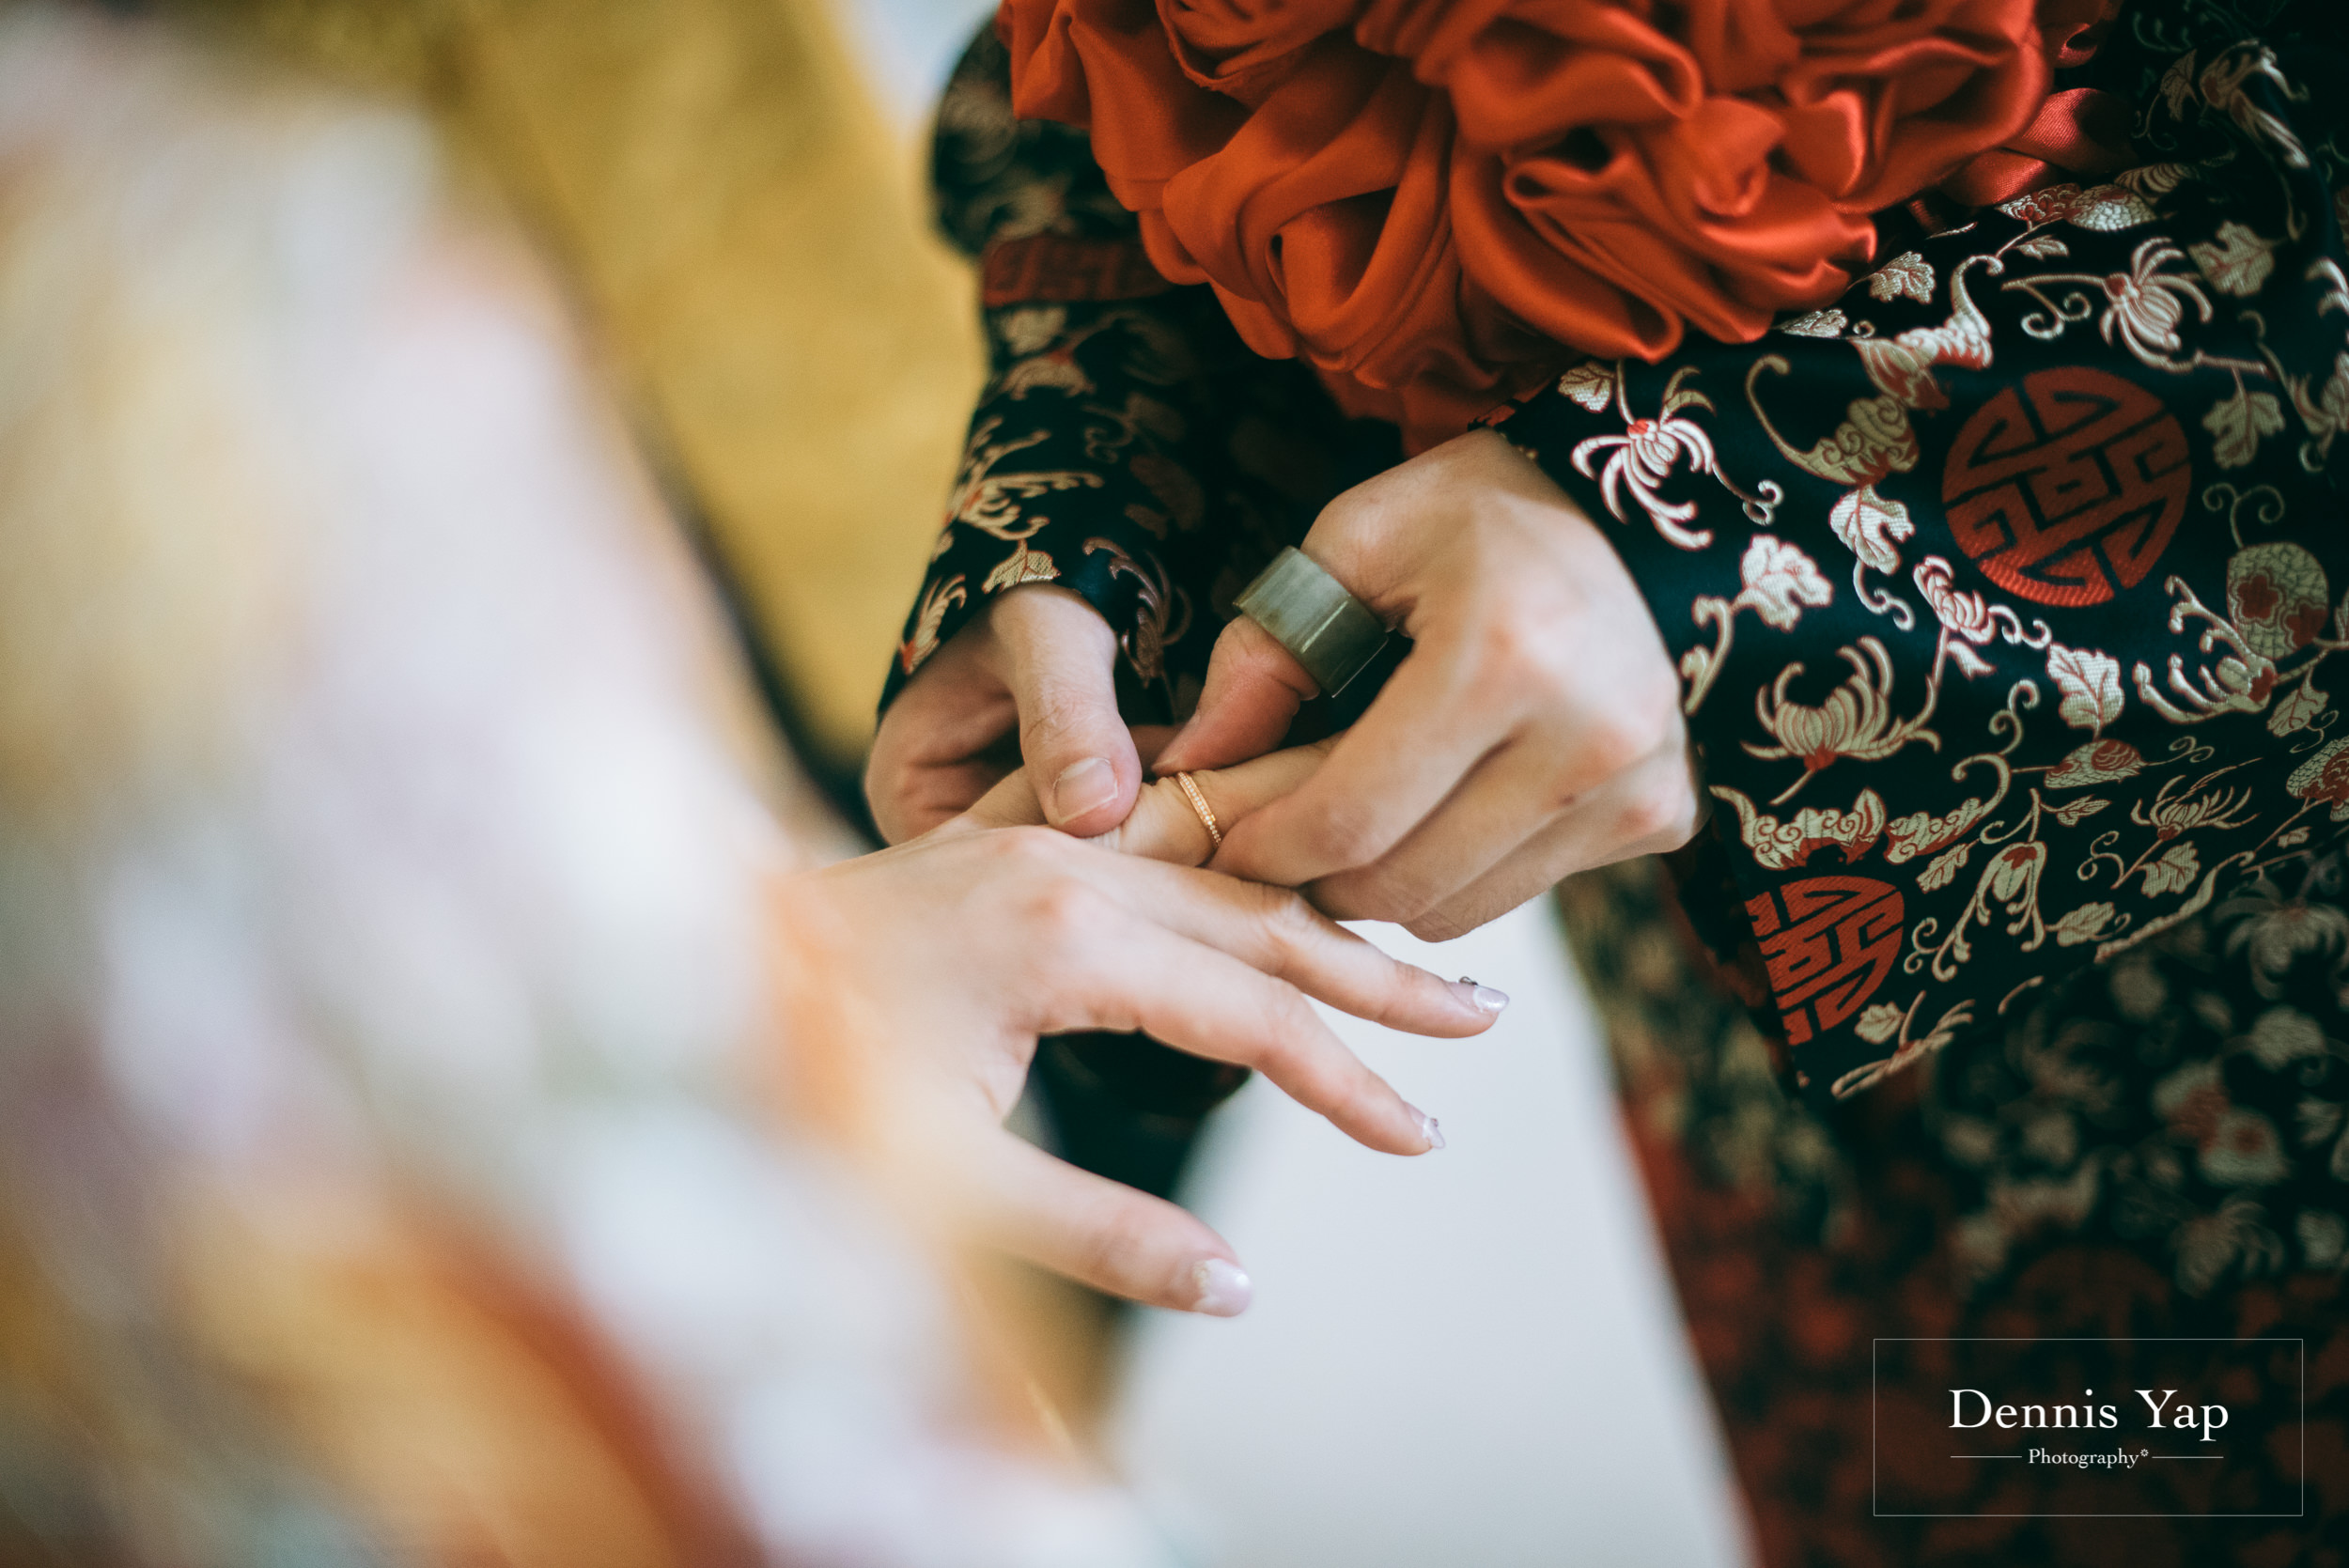 bobby fiona dennis yap photography malaysia wedding photographer chinese traditional-78.jpg